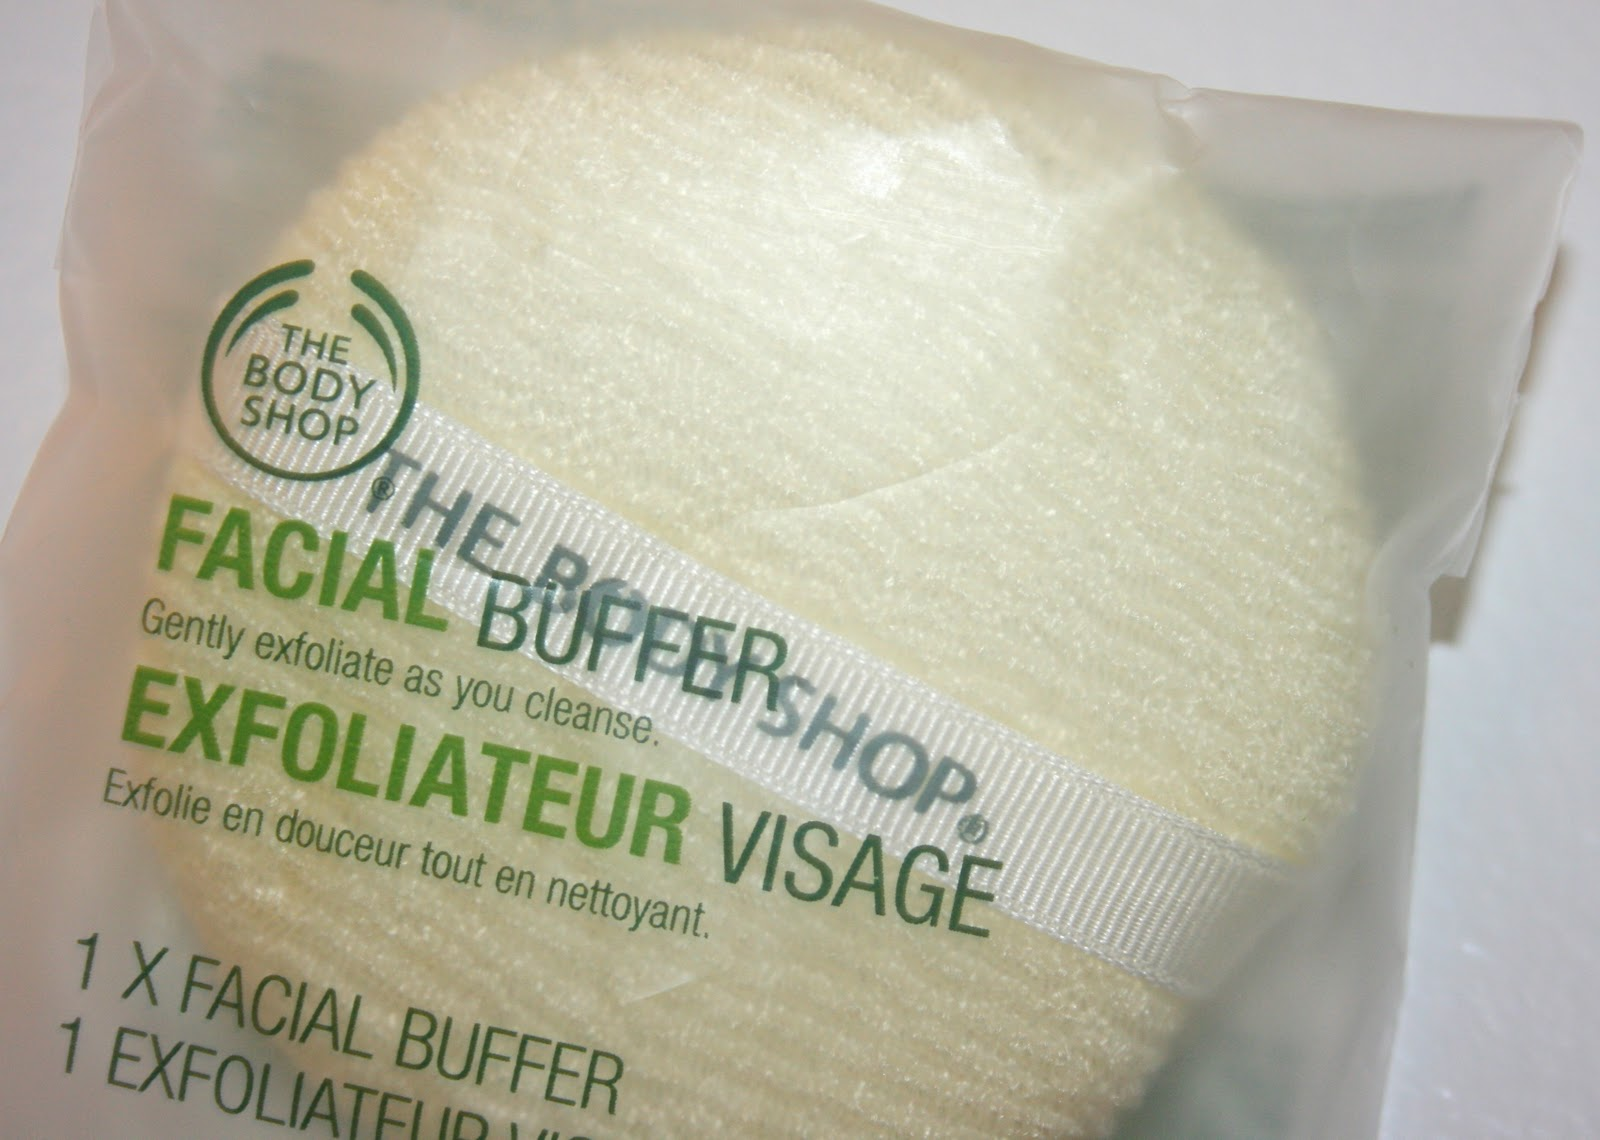 Makeup Beauty And More The Body Shop S Facial Buffer Ain T Any